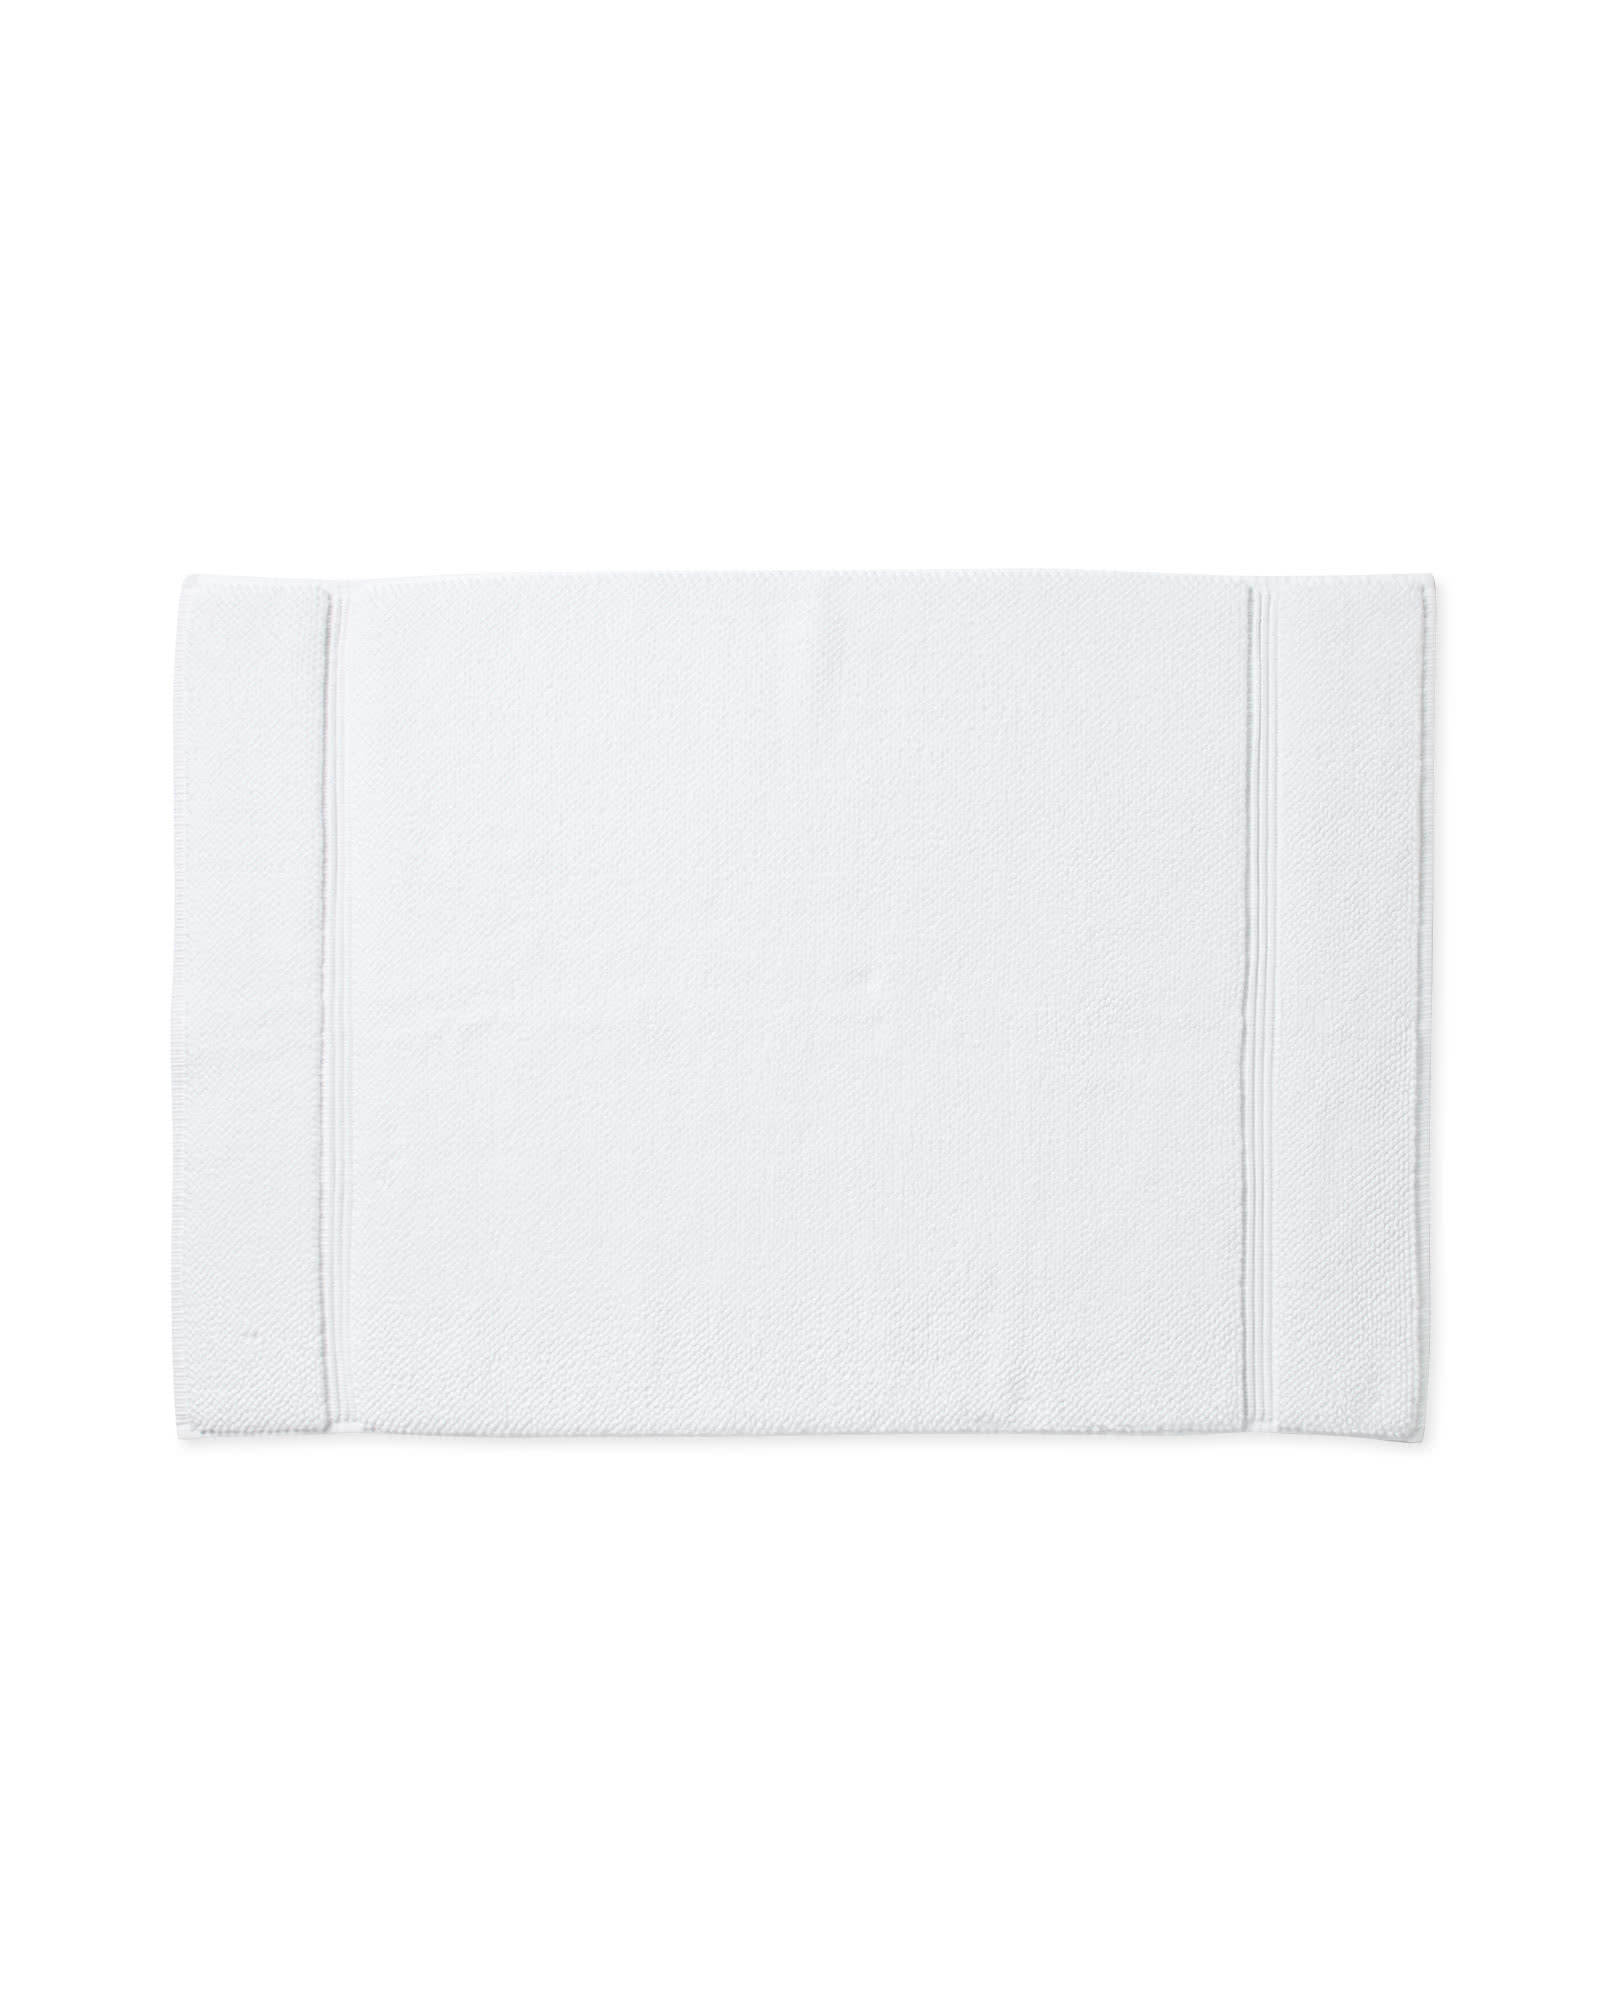 Turkish Bath Mat, White